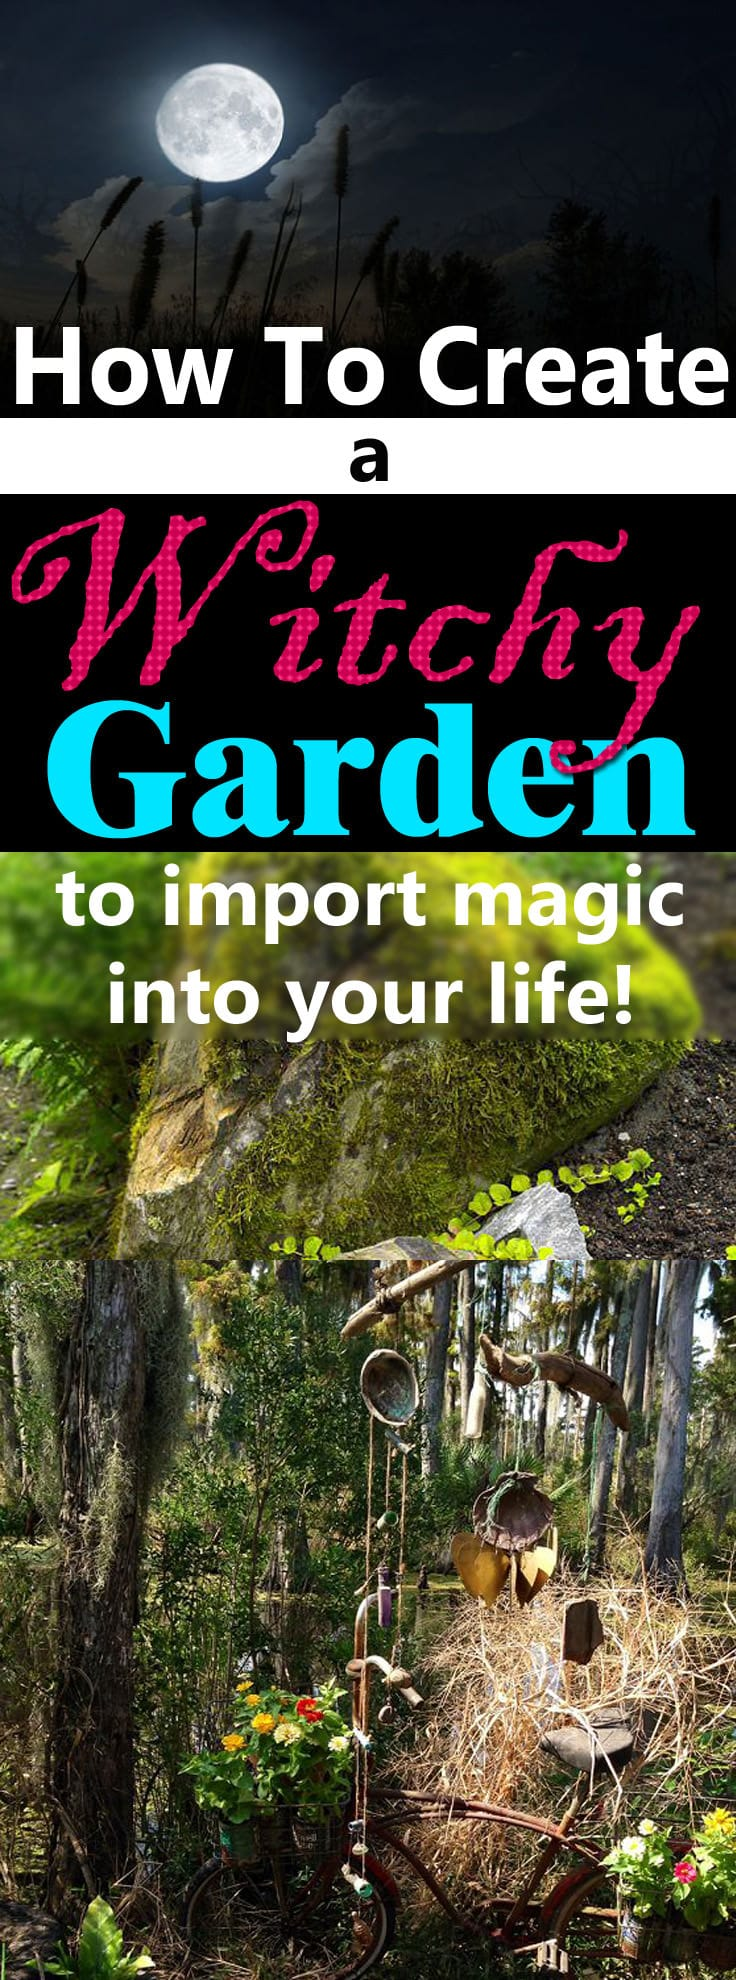 If you believe in magic, support mystical theories and consider yourself a spiritual person--Learn how to create a Witch's Garden!